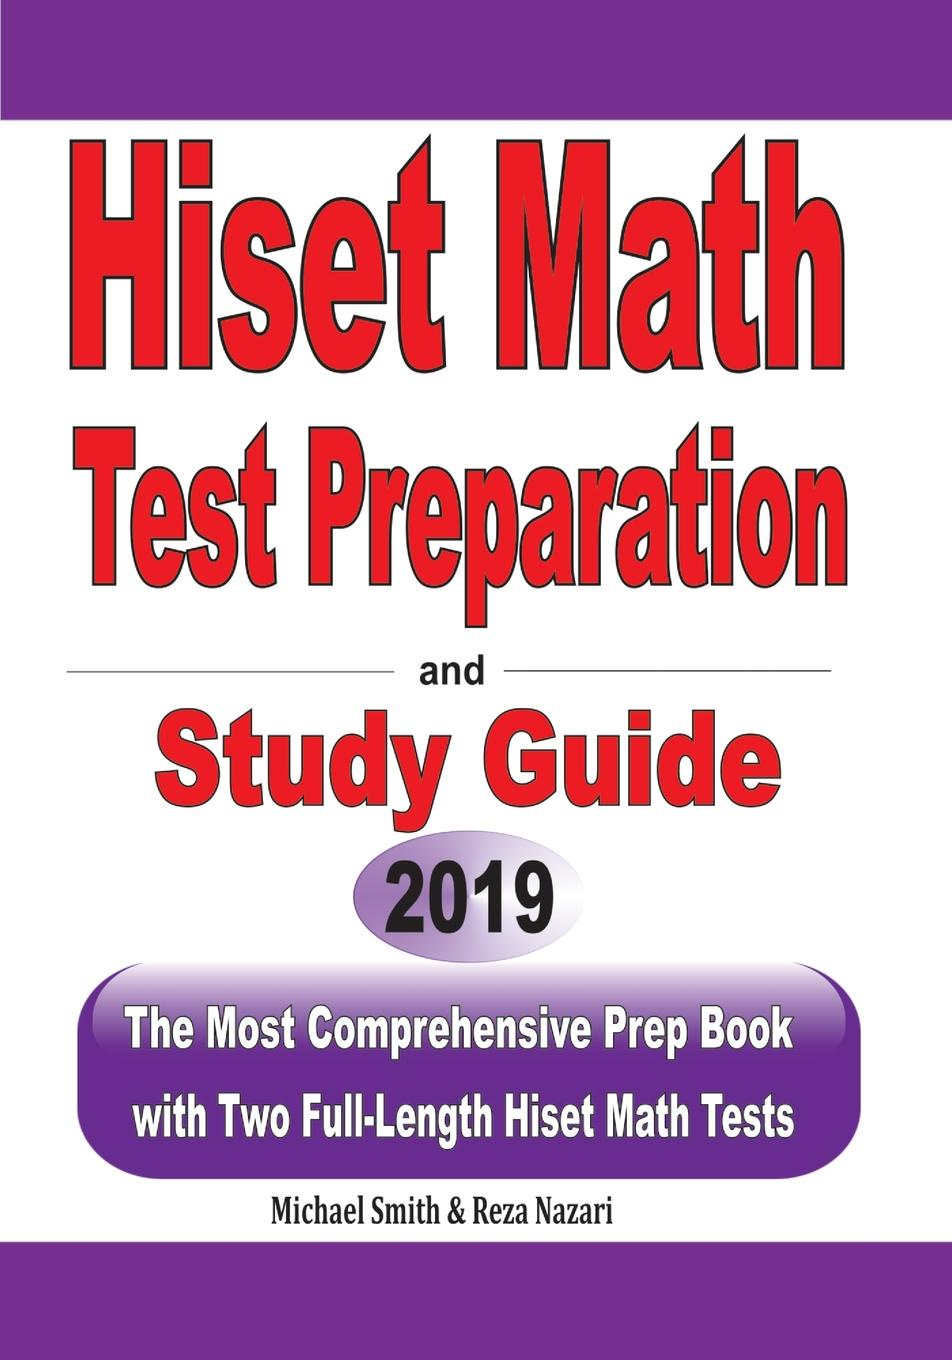 Michael Smith HiSET Math Test Preparation and study guide. The Most Comprehensive Prep Book with Two Full-Length HiSET Math Tests